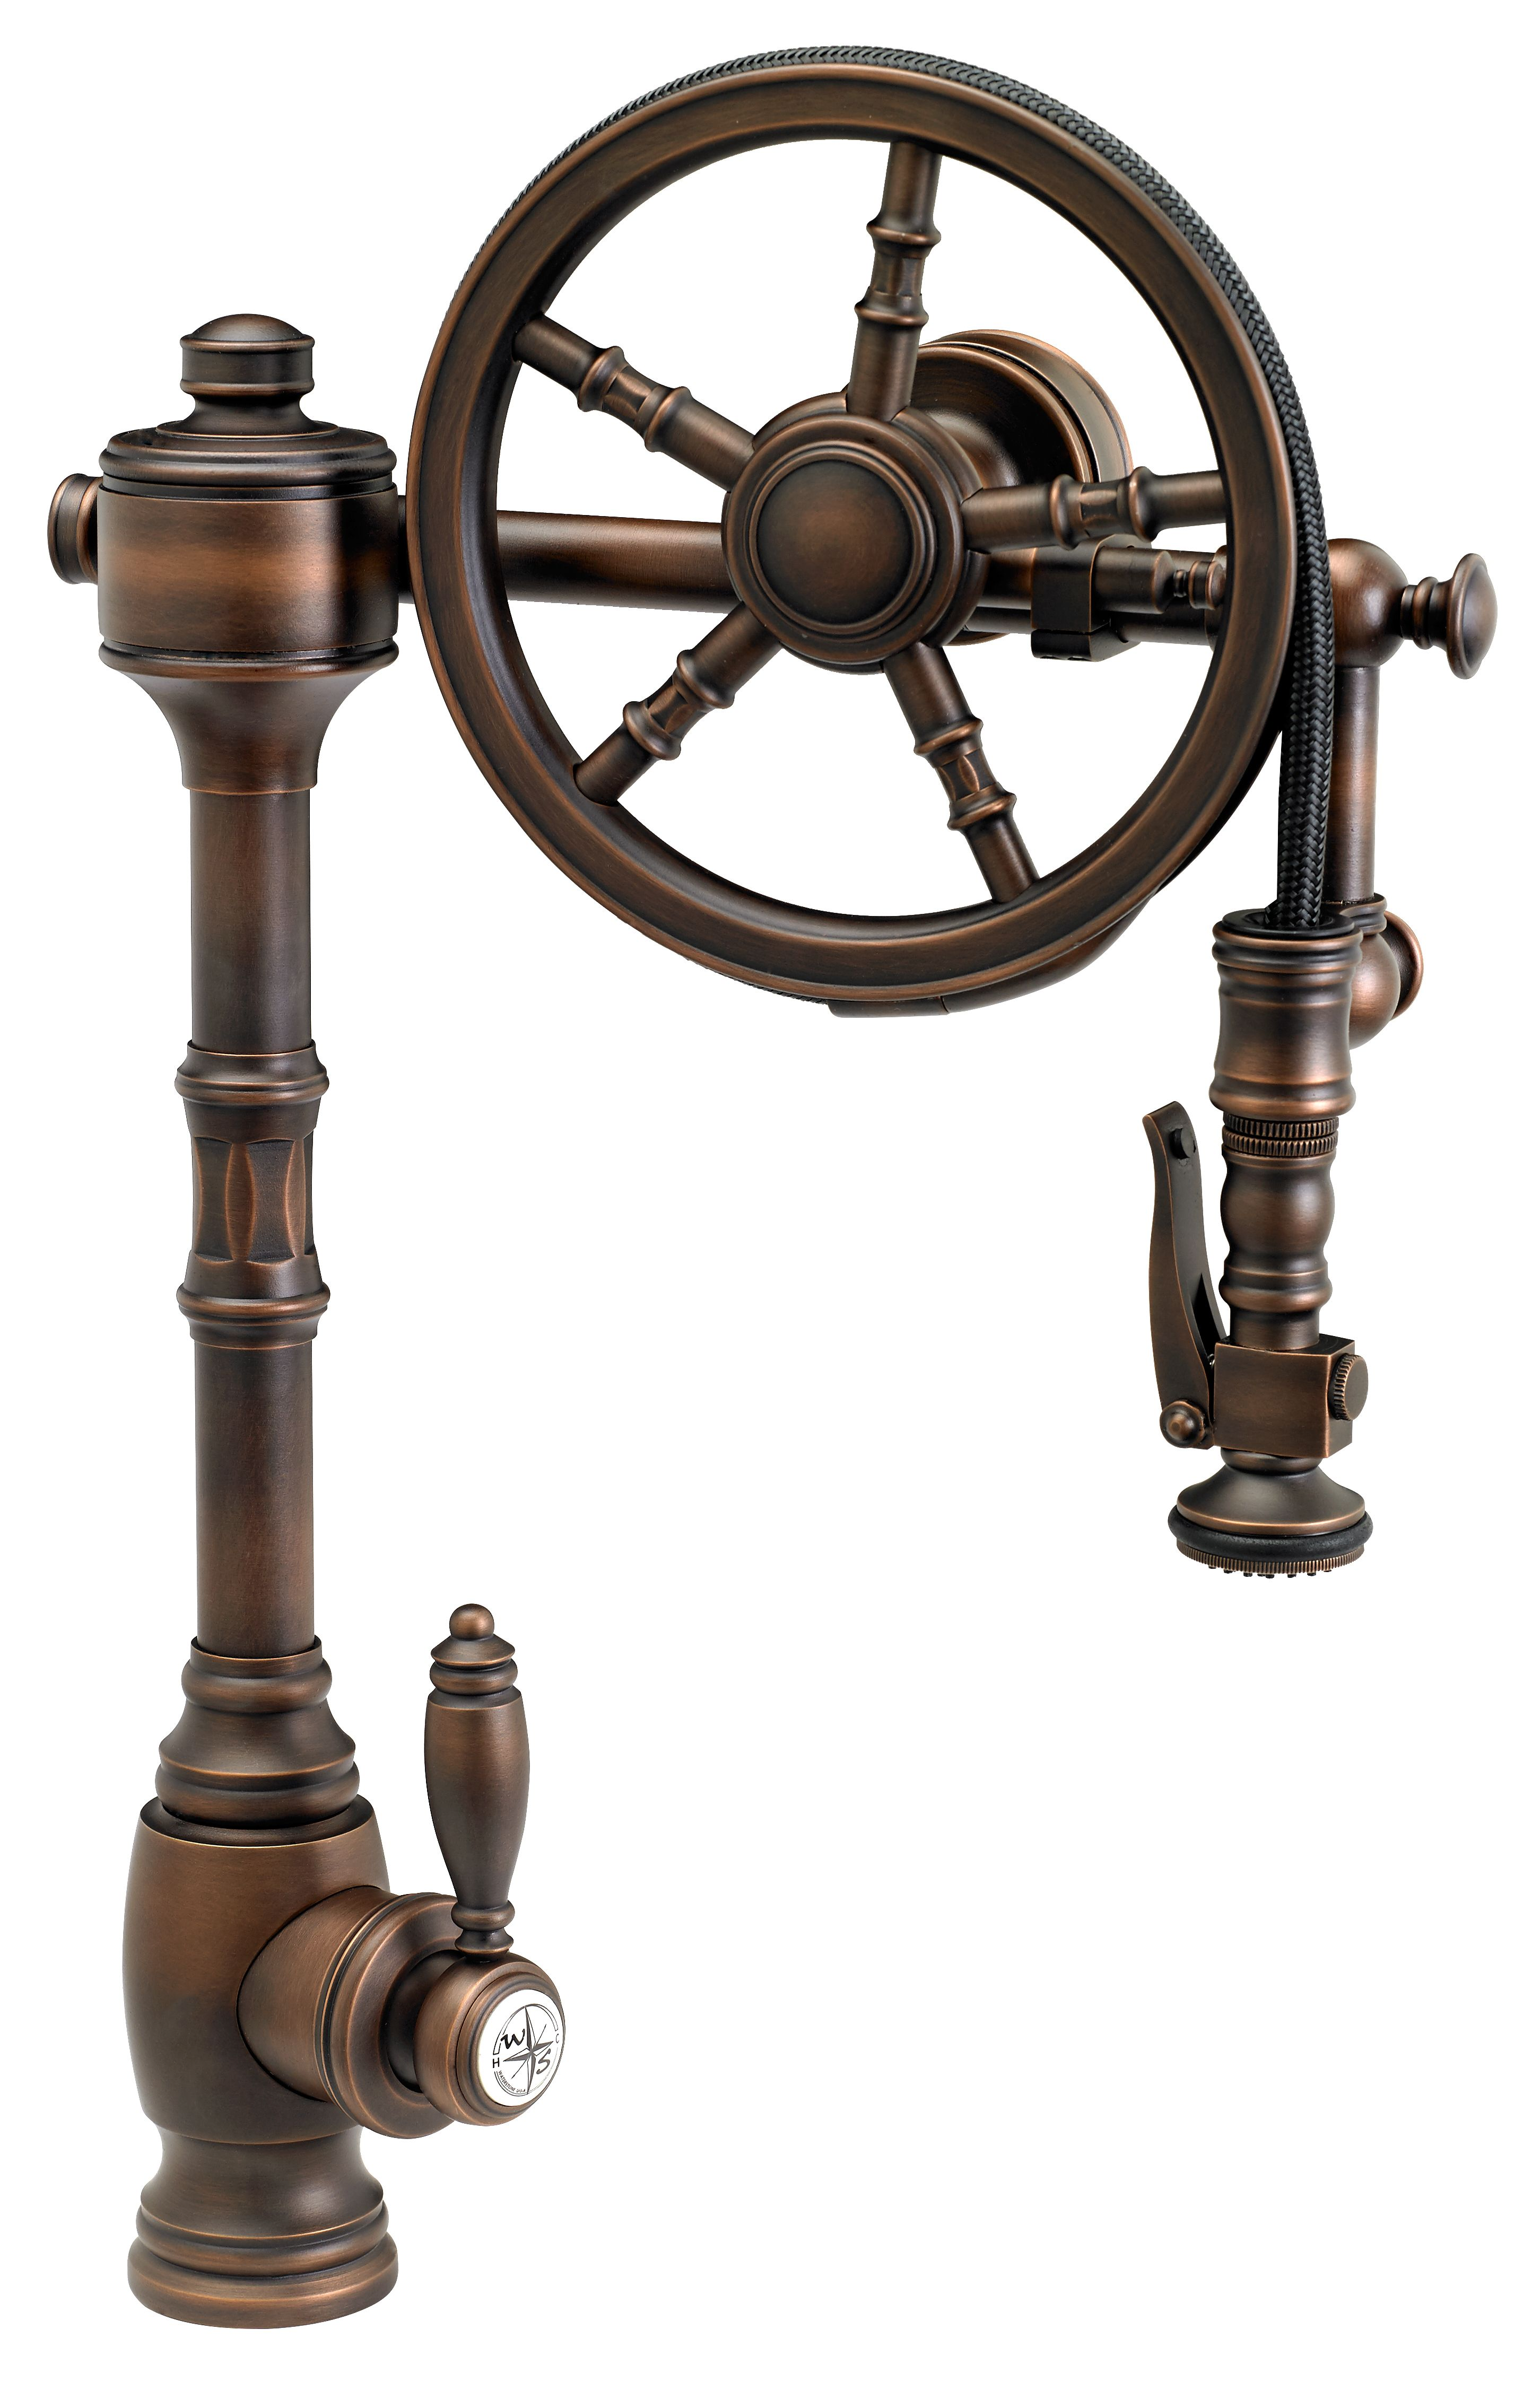 delightful Bronze Pull Down Kitchen Faucet #6: Waterstone Wheel Pulldown Kitchen Faucet - 5100. Finish is American Bronze.